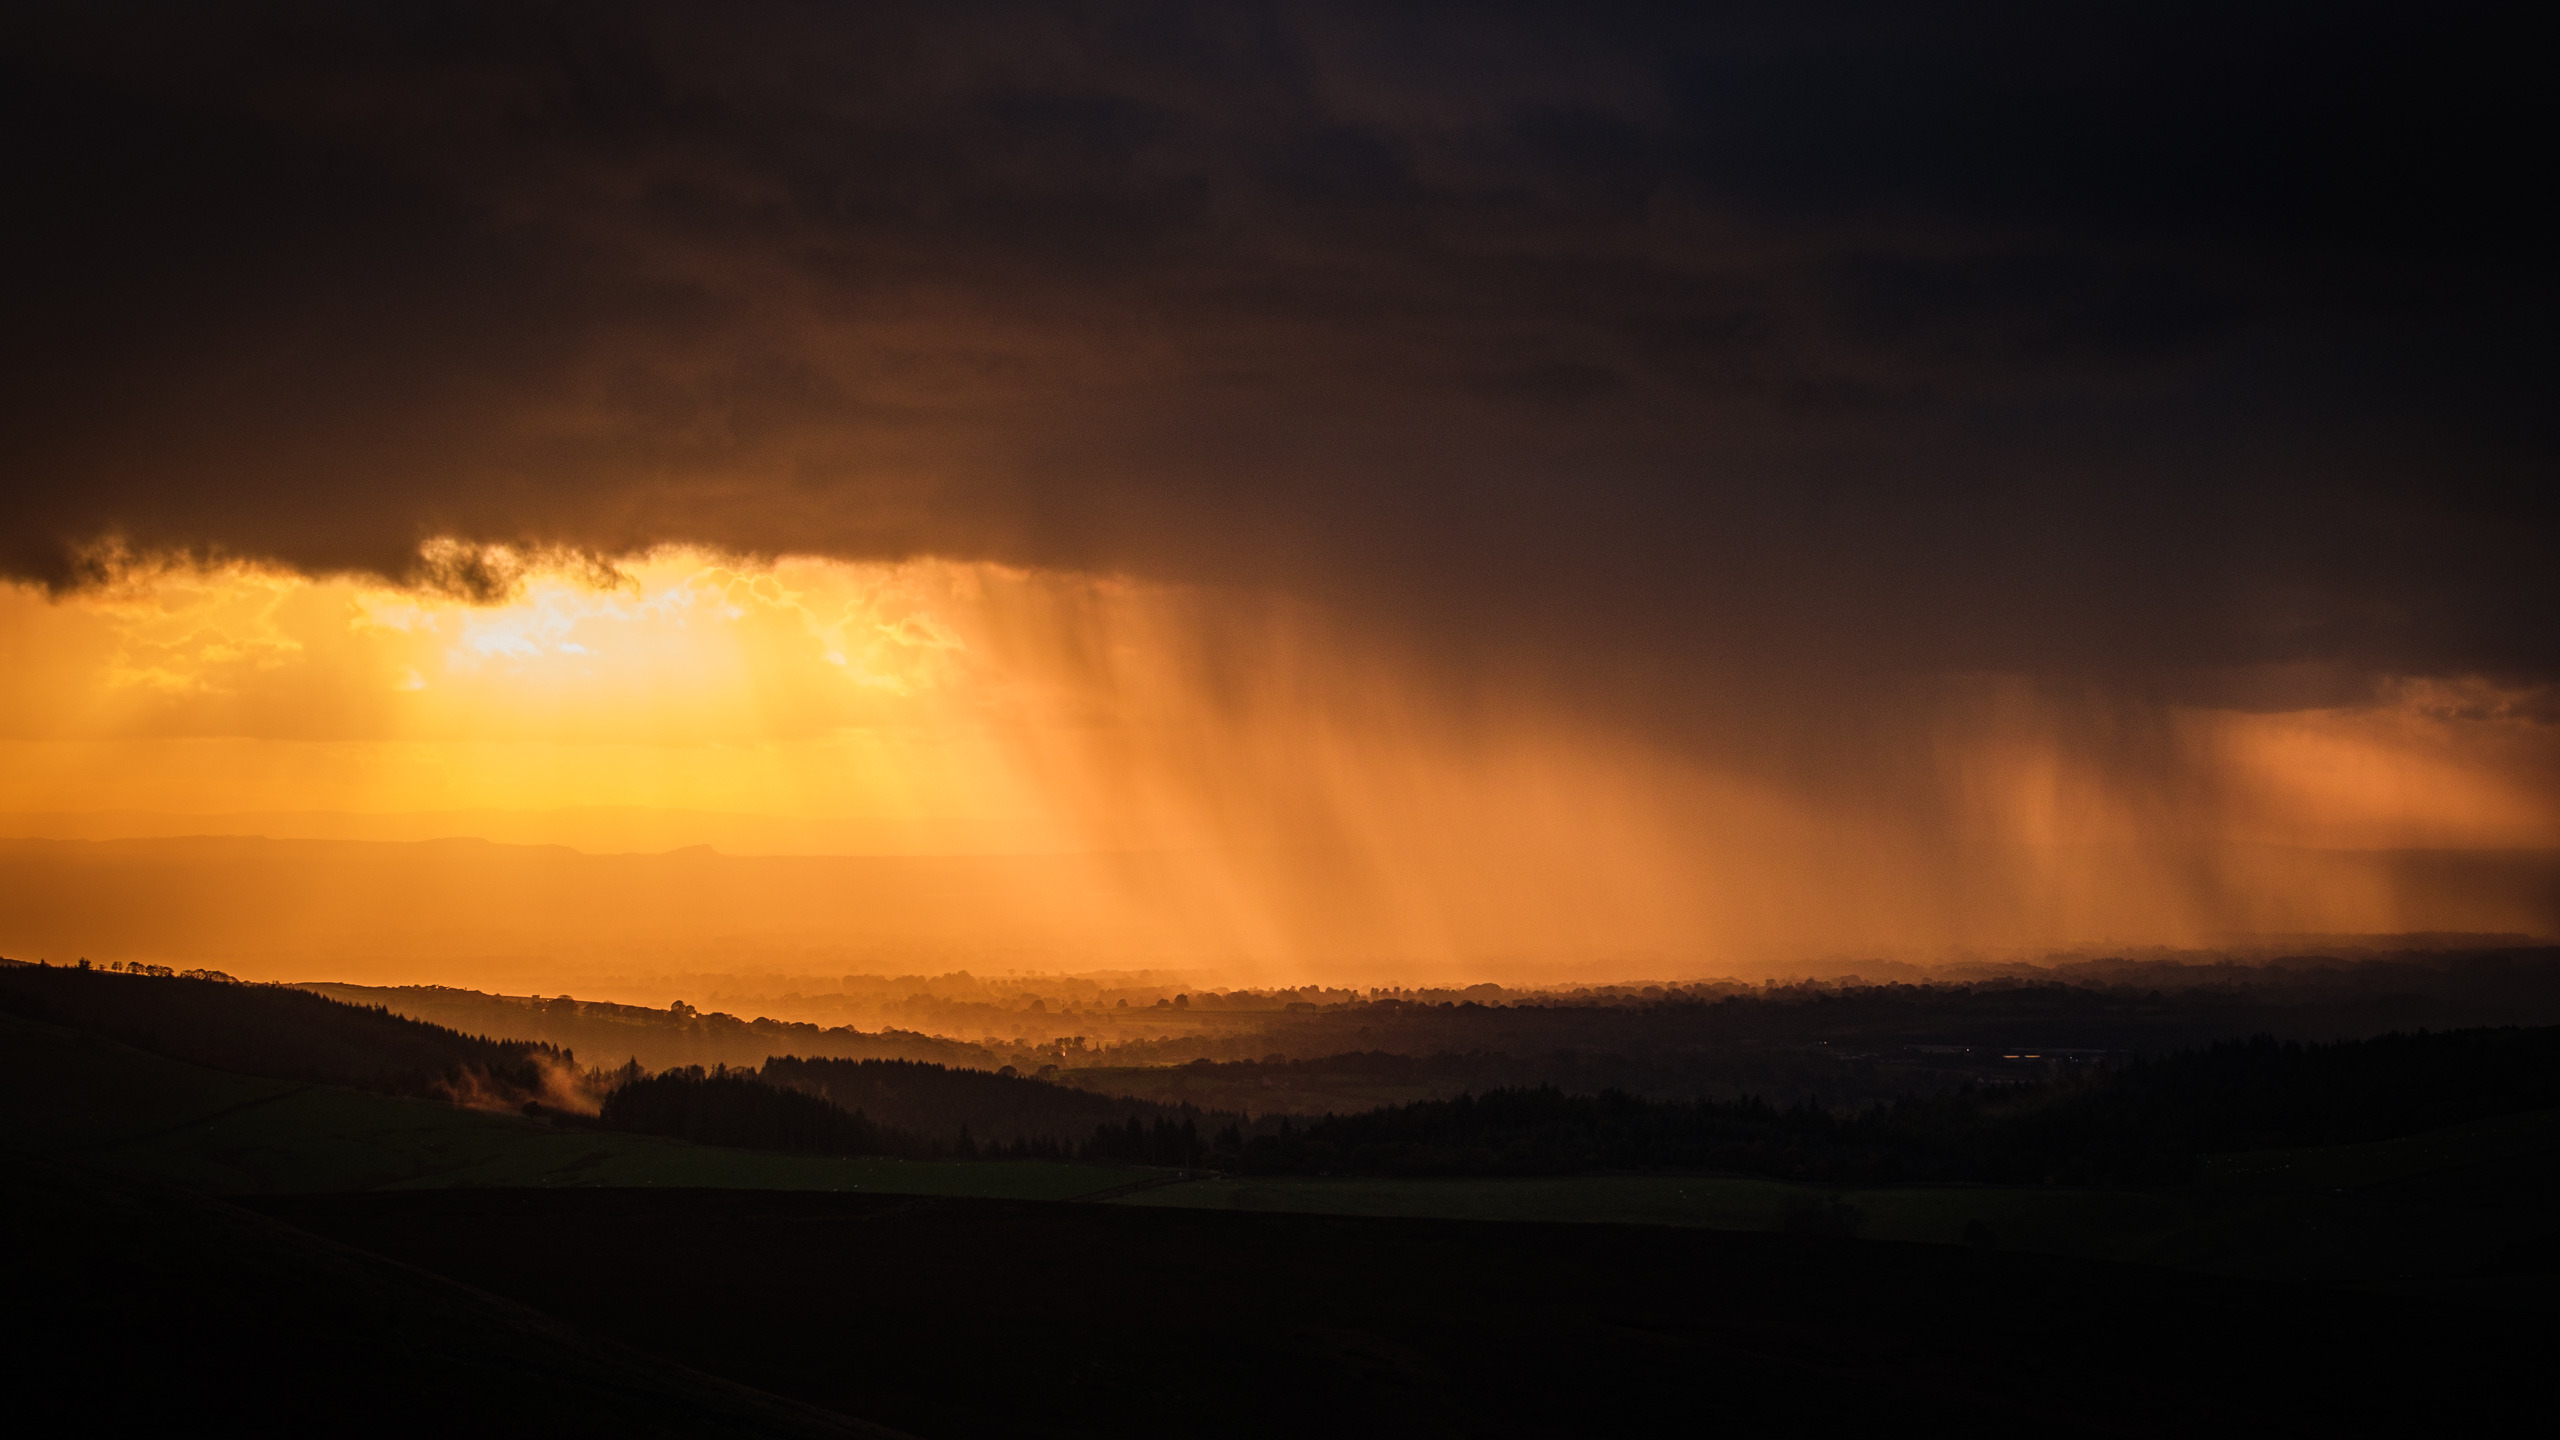 Rain storm over Macclesfield